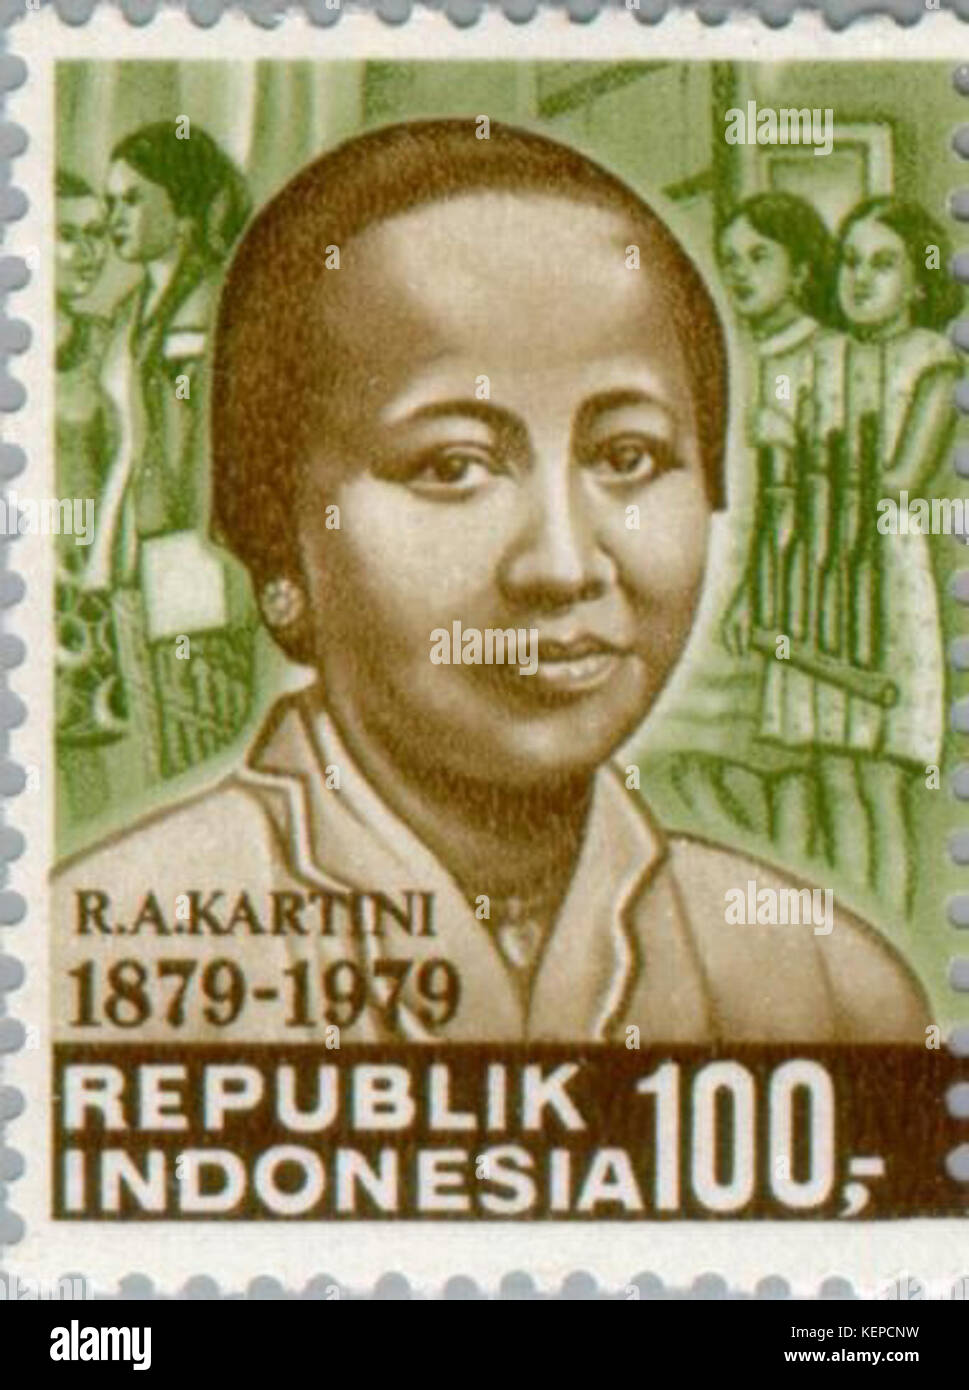 kartini high resolution stock photography and images alamy https www alamy com stock image kartini 1979 indonesia stamp 163991461 html